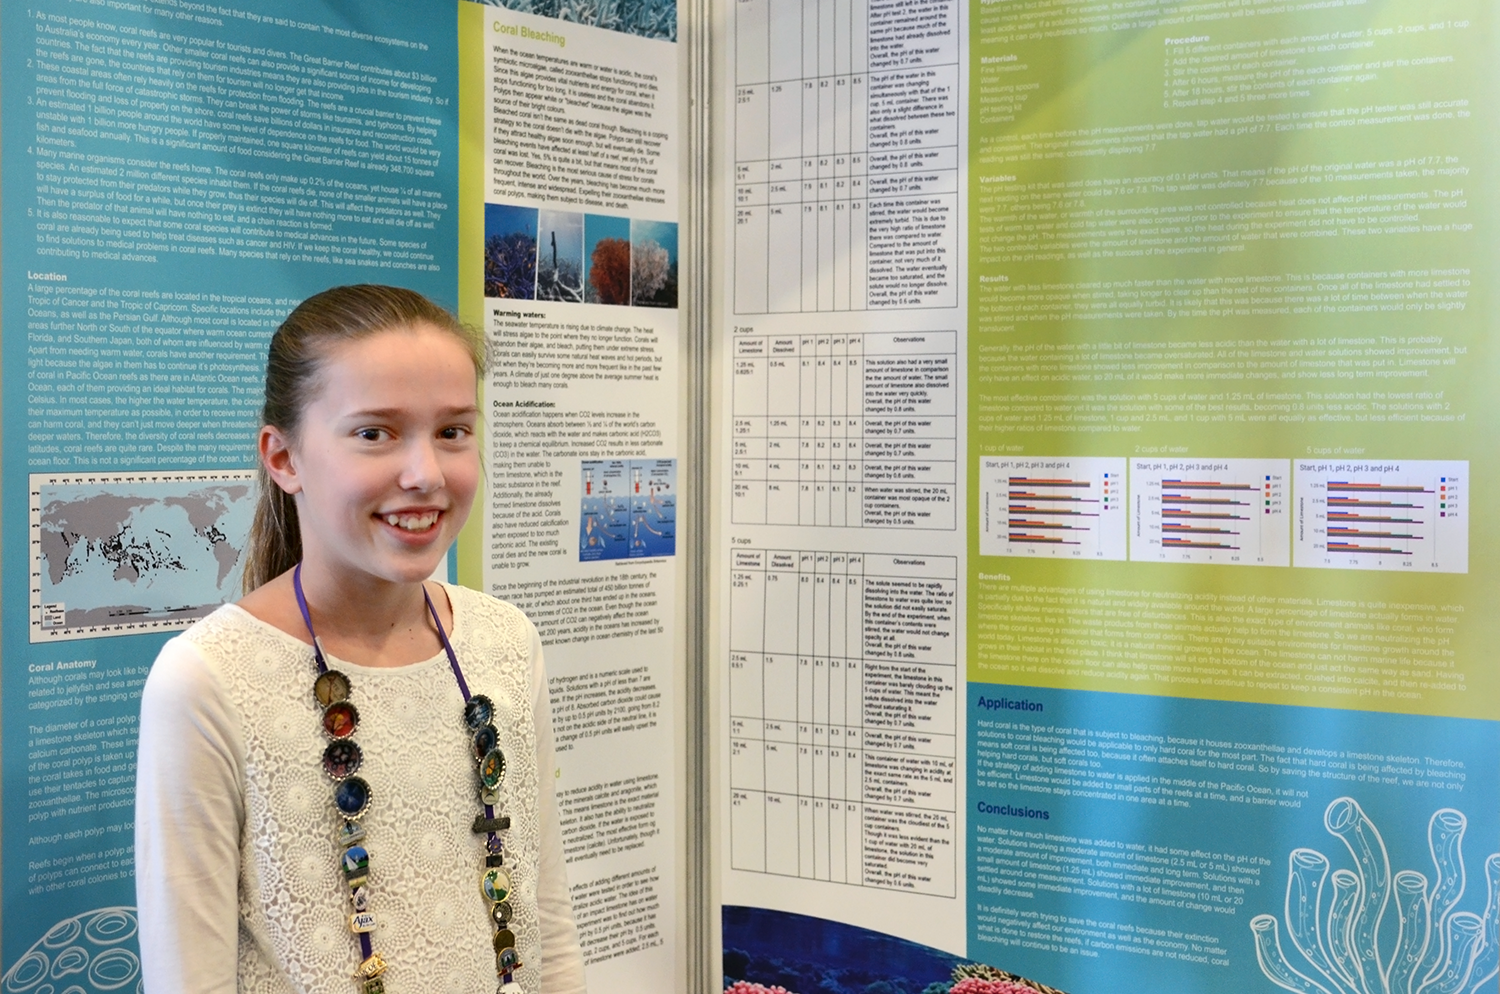 Nikki Van Schaik with her project on coral bleaching